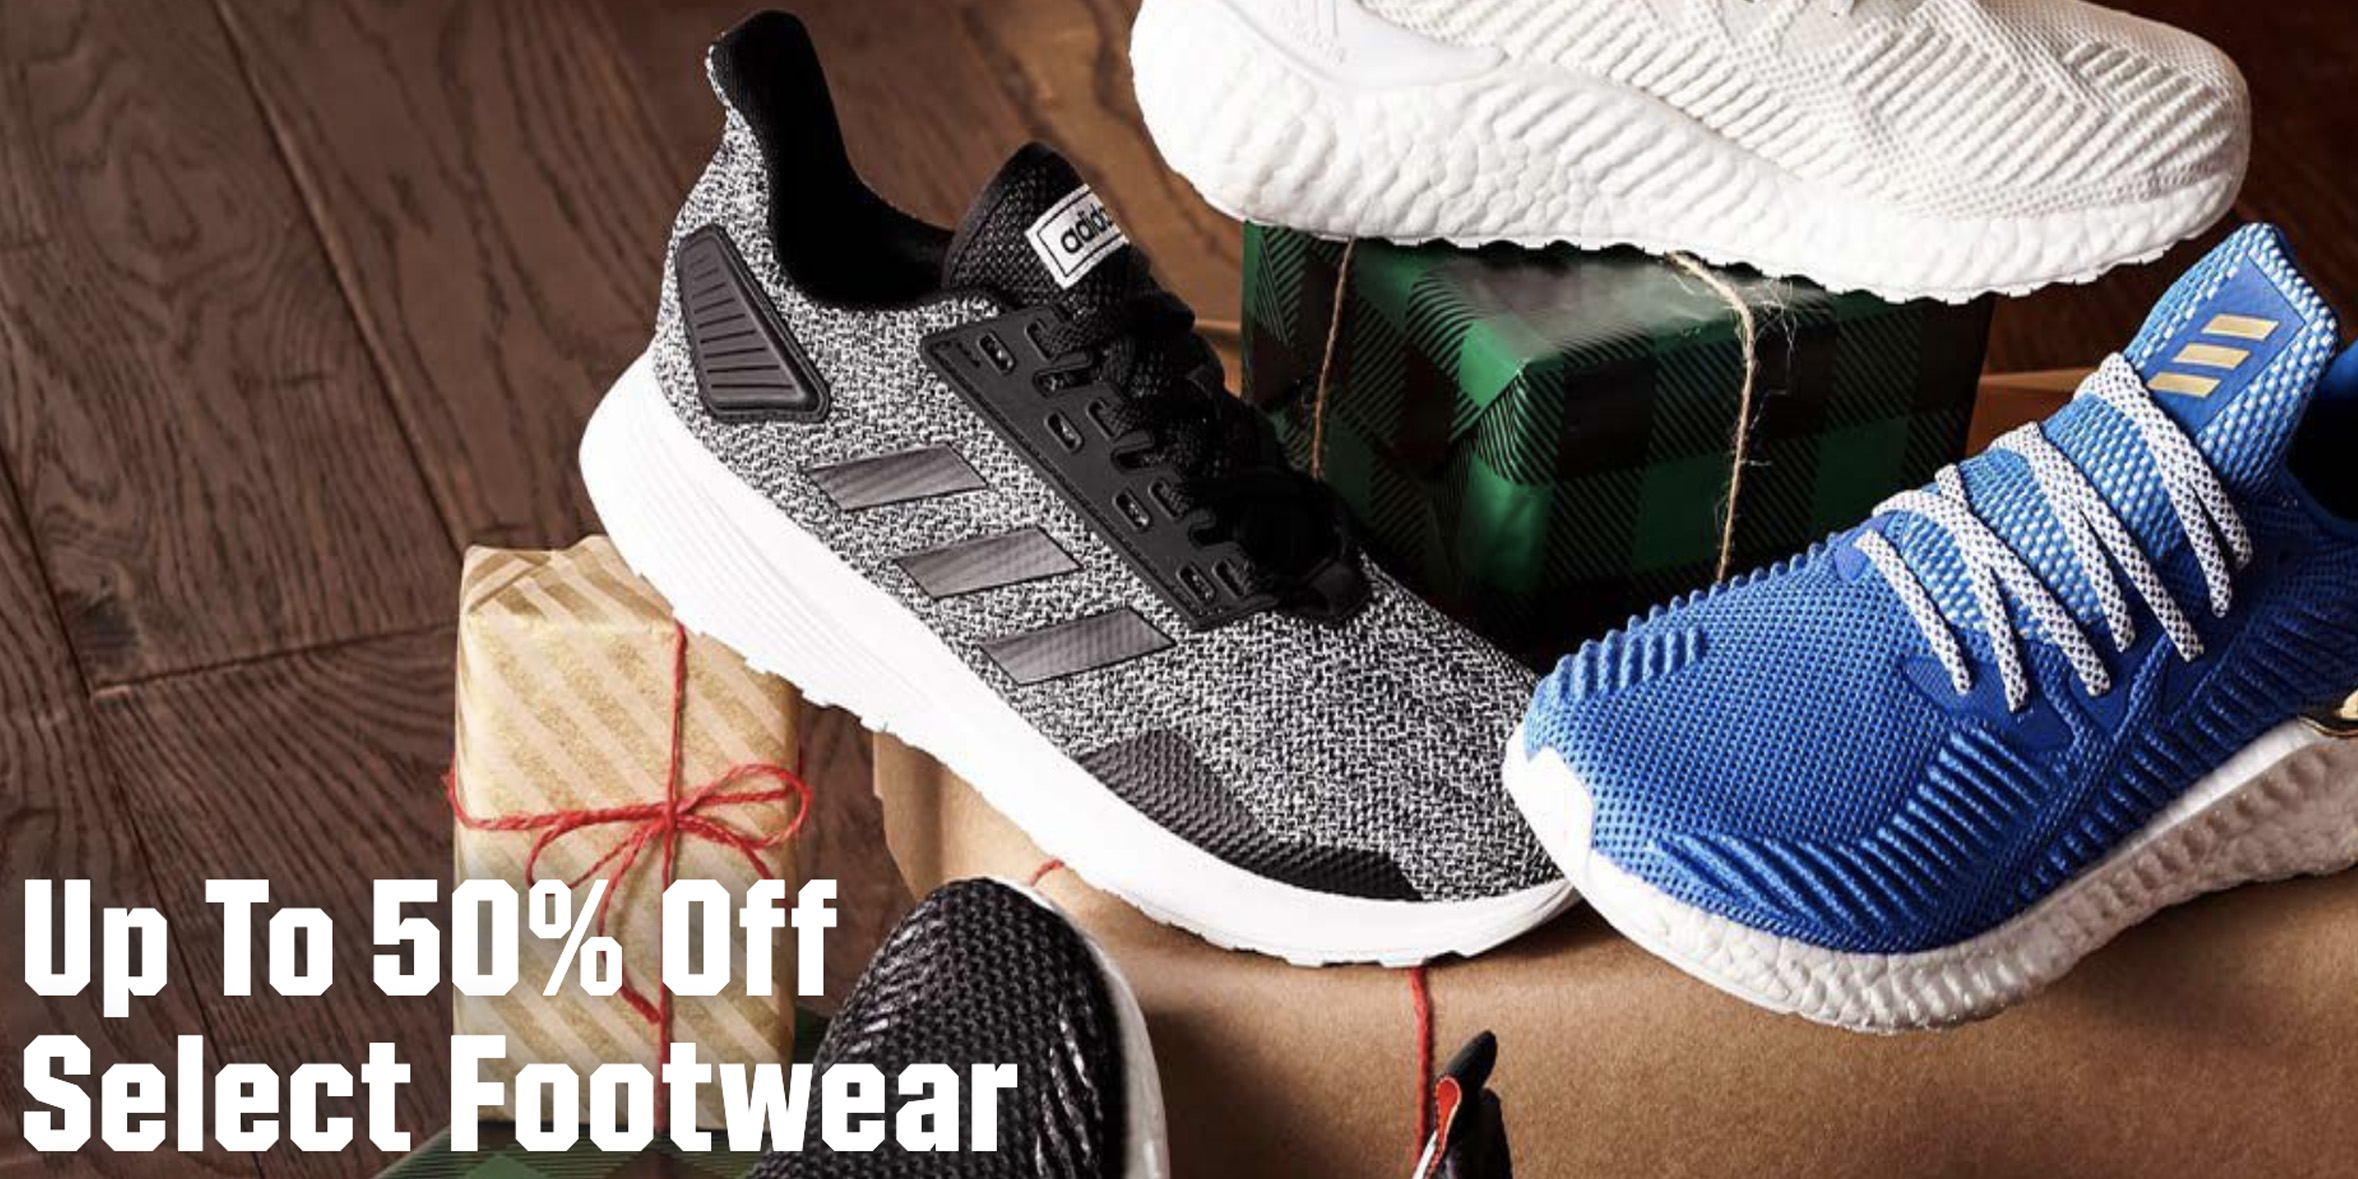 Dick's Sporting Goods Holiday Deals takes up to 50% off